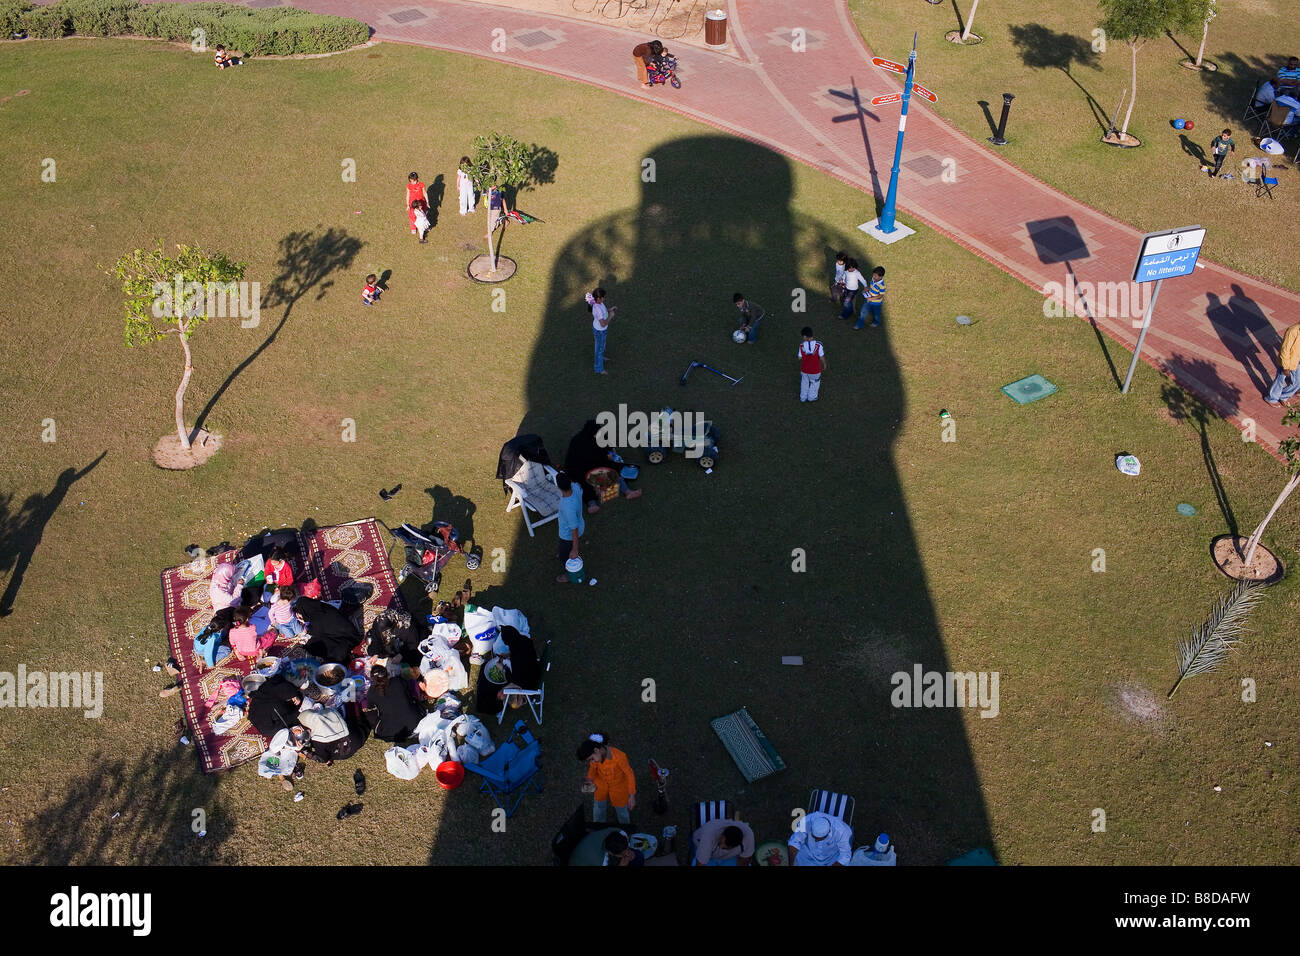 The shadow of a viewing tower in the Khalidiya family park - Stock Image